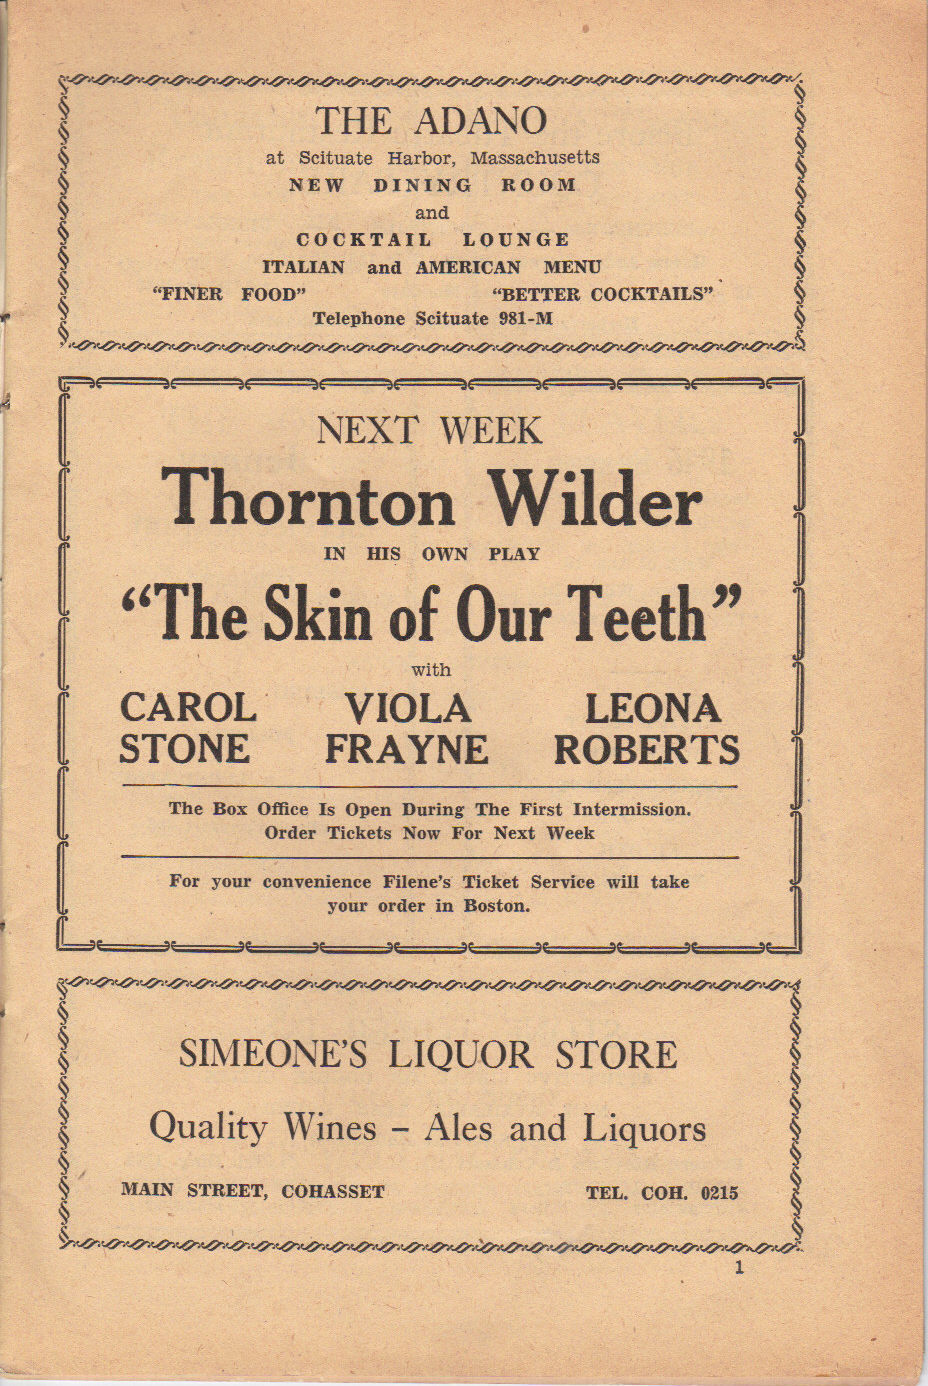 wilder-in-the-skin-of-our-teeth_4307067340_o.jpg